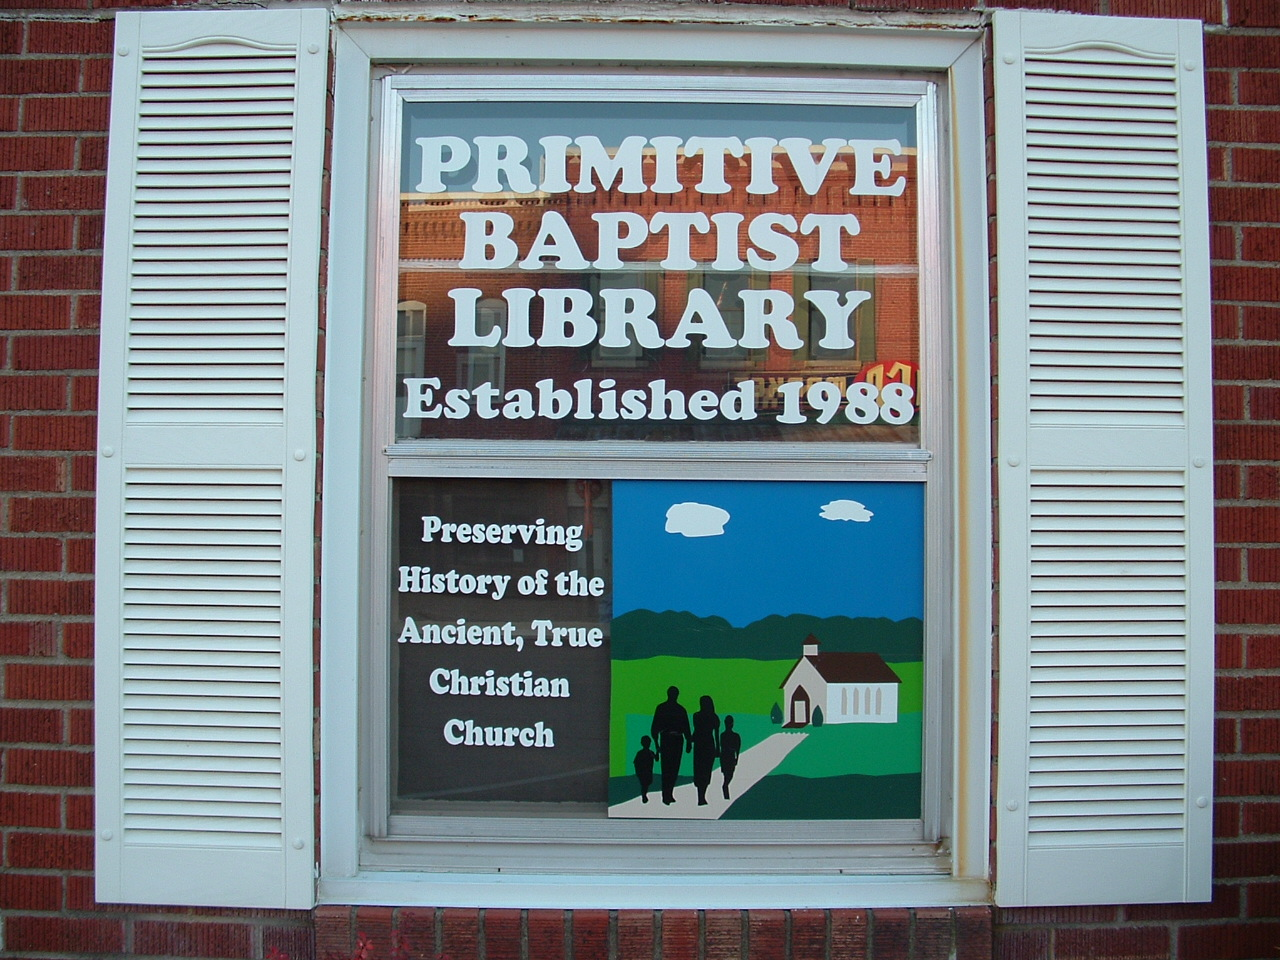 Primitive Baptist Library of Carthage, Illinois